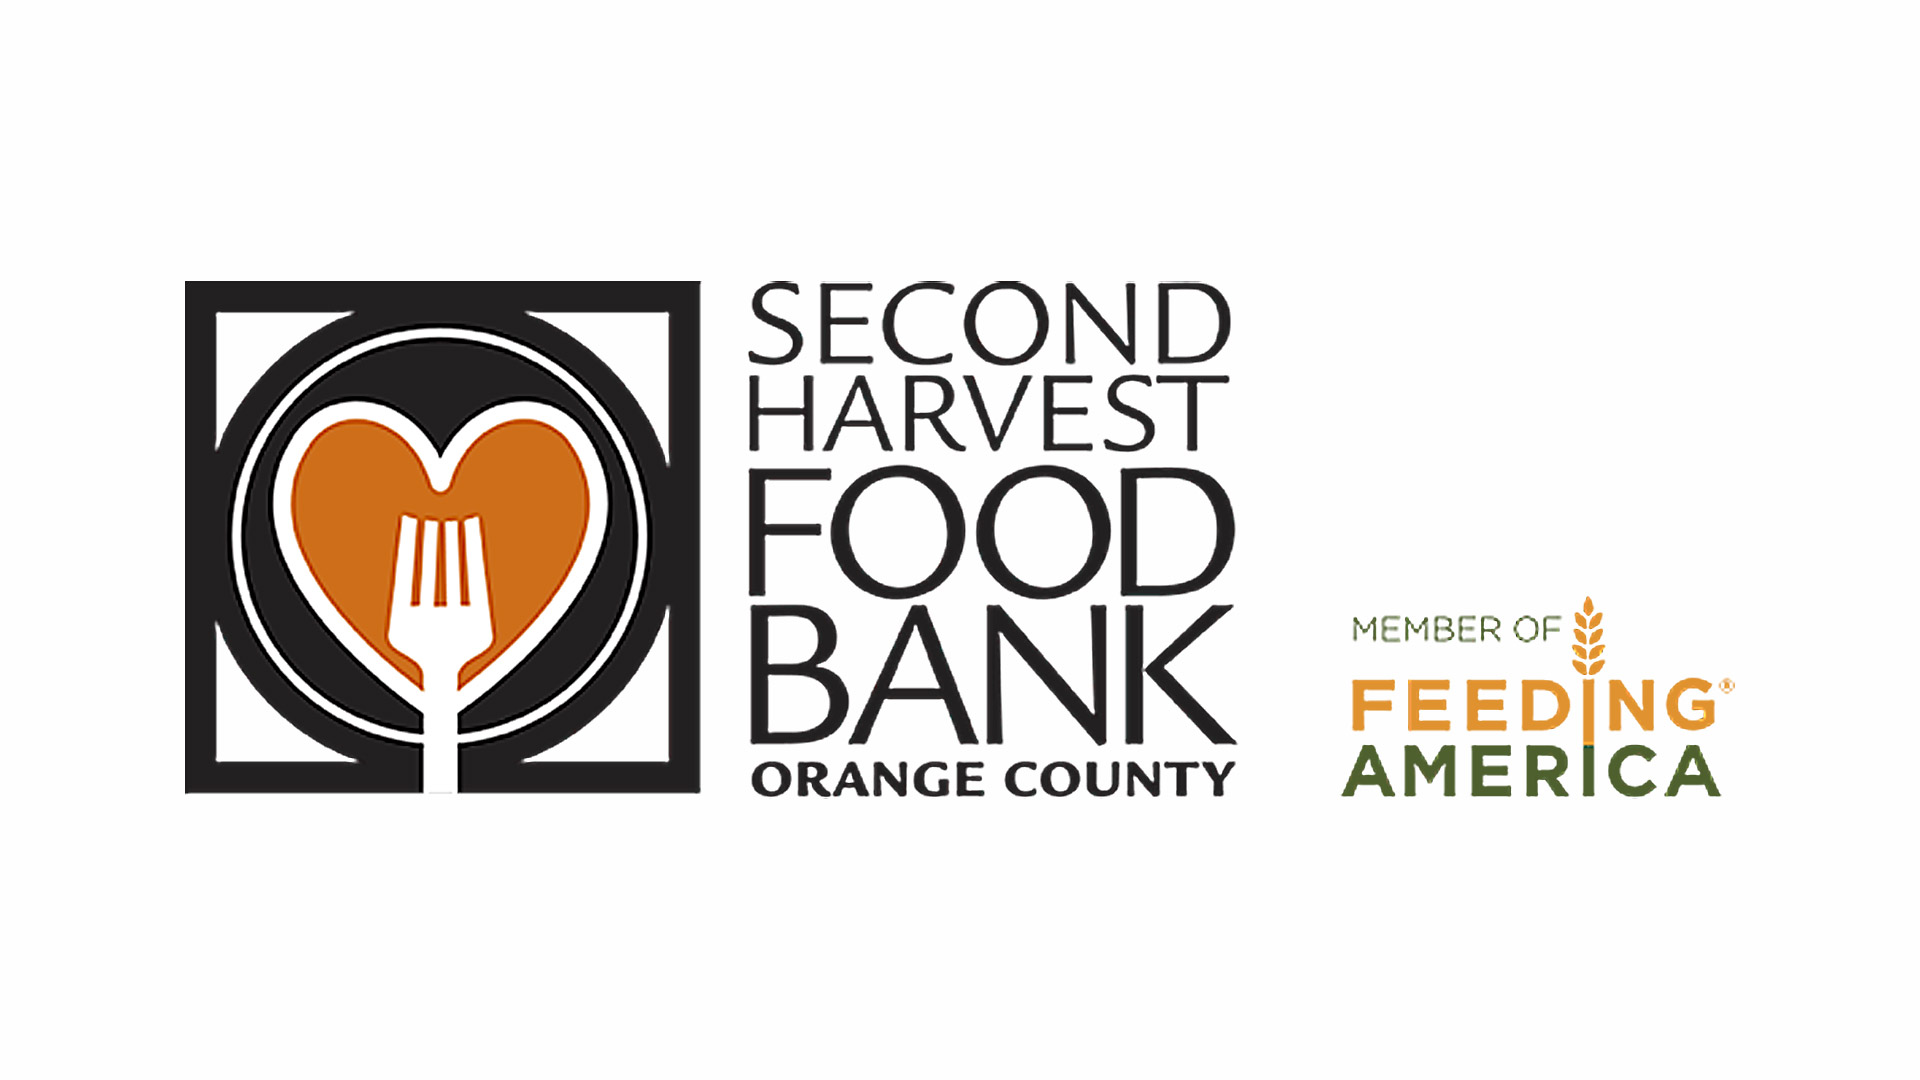 2nd Harvest Food Bank